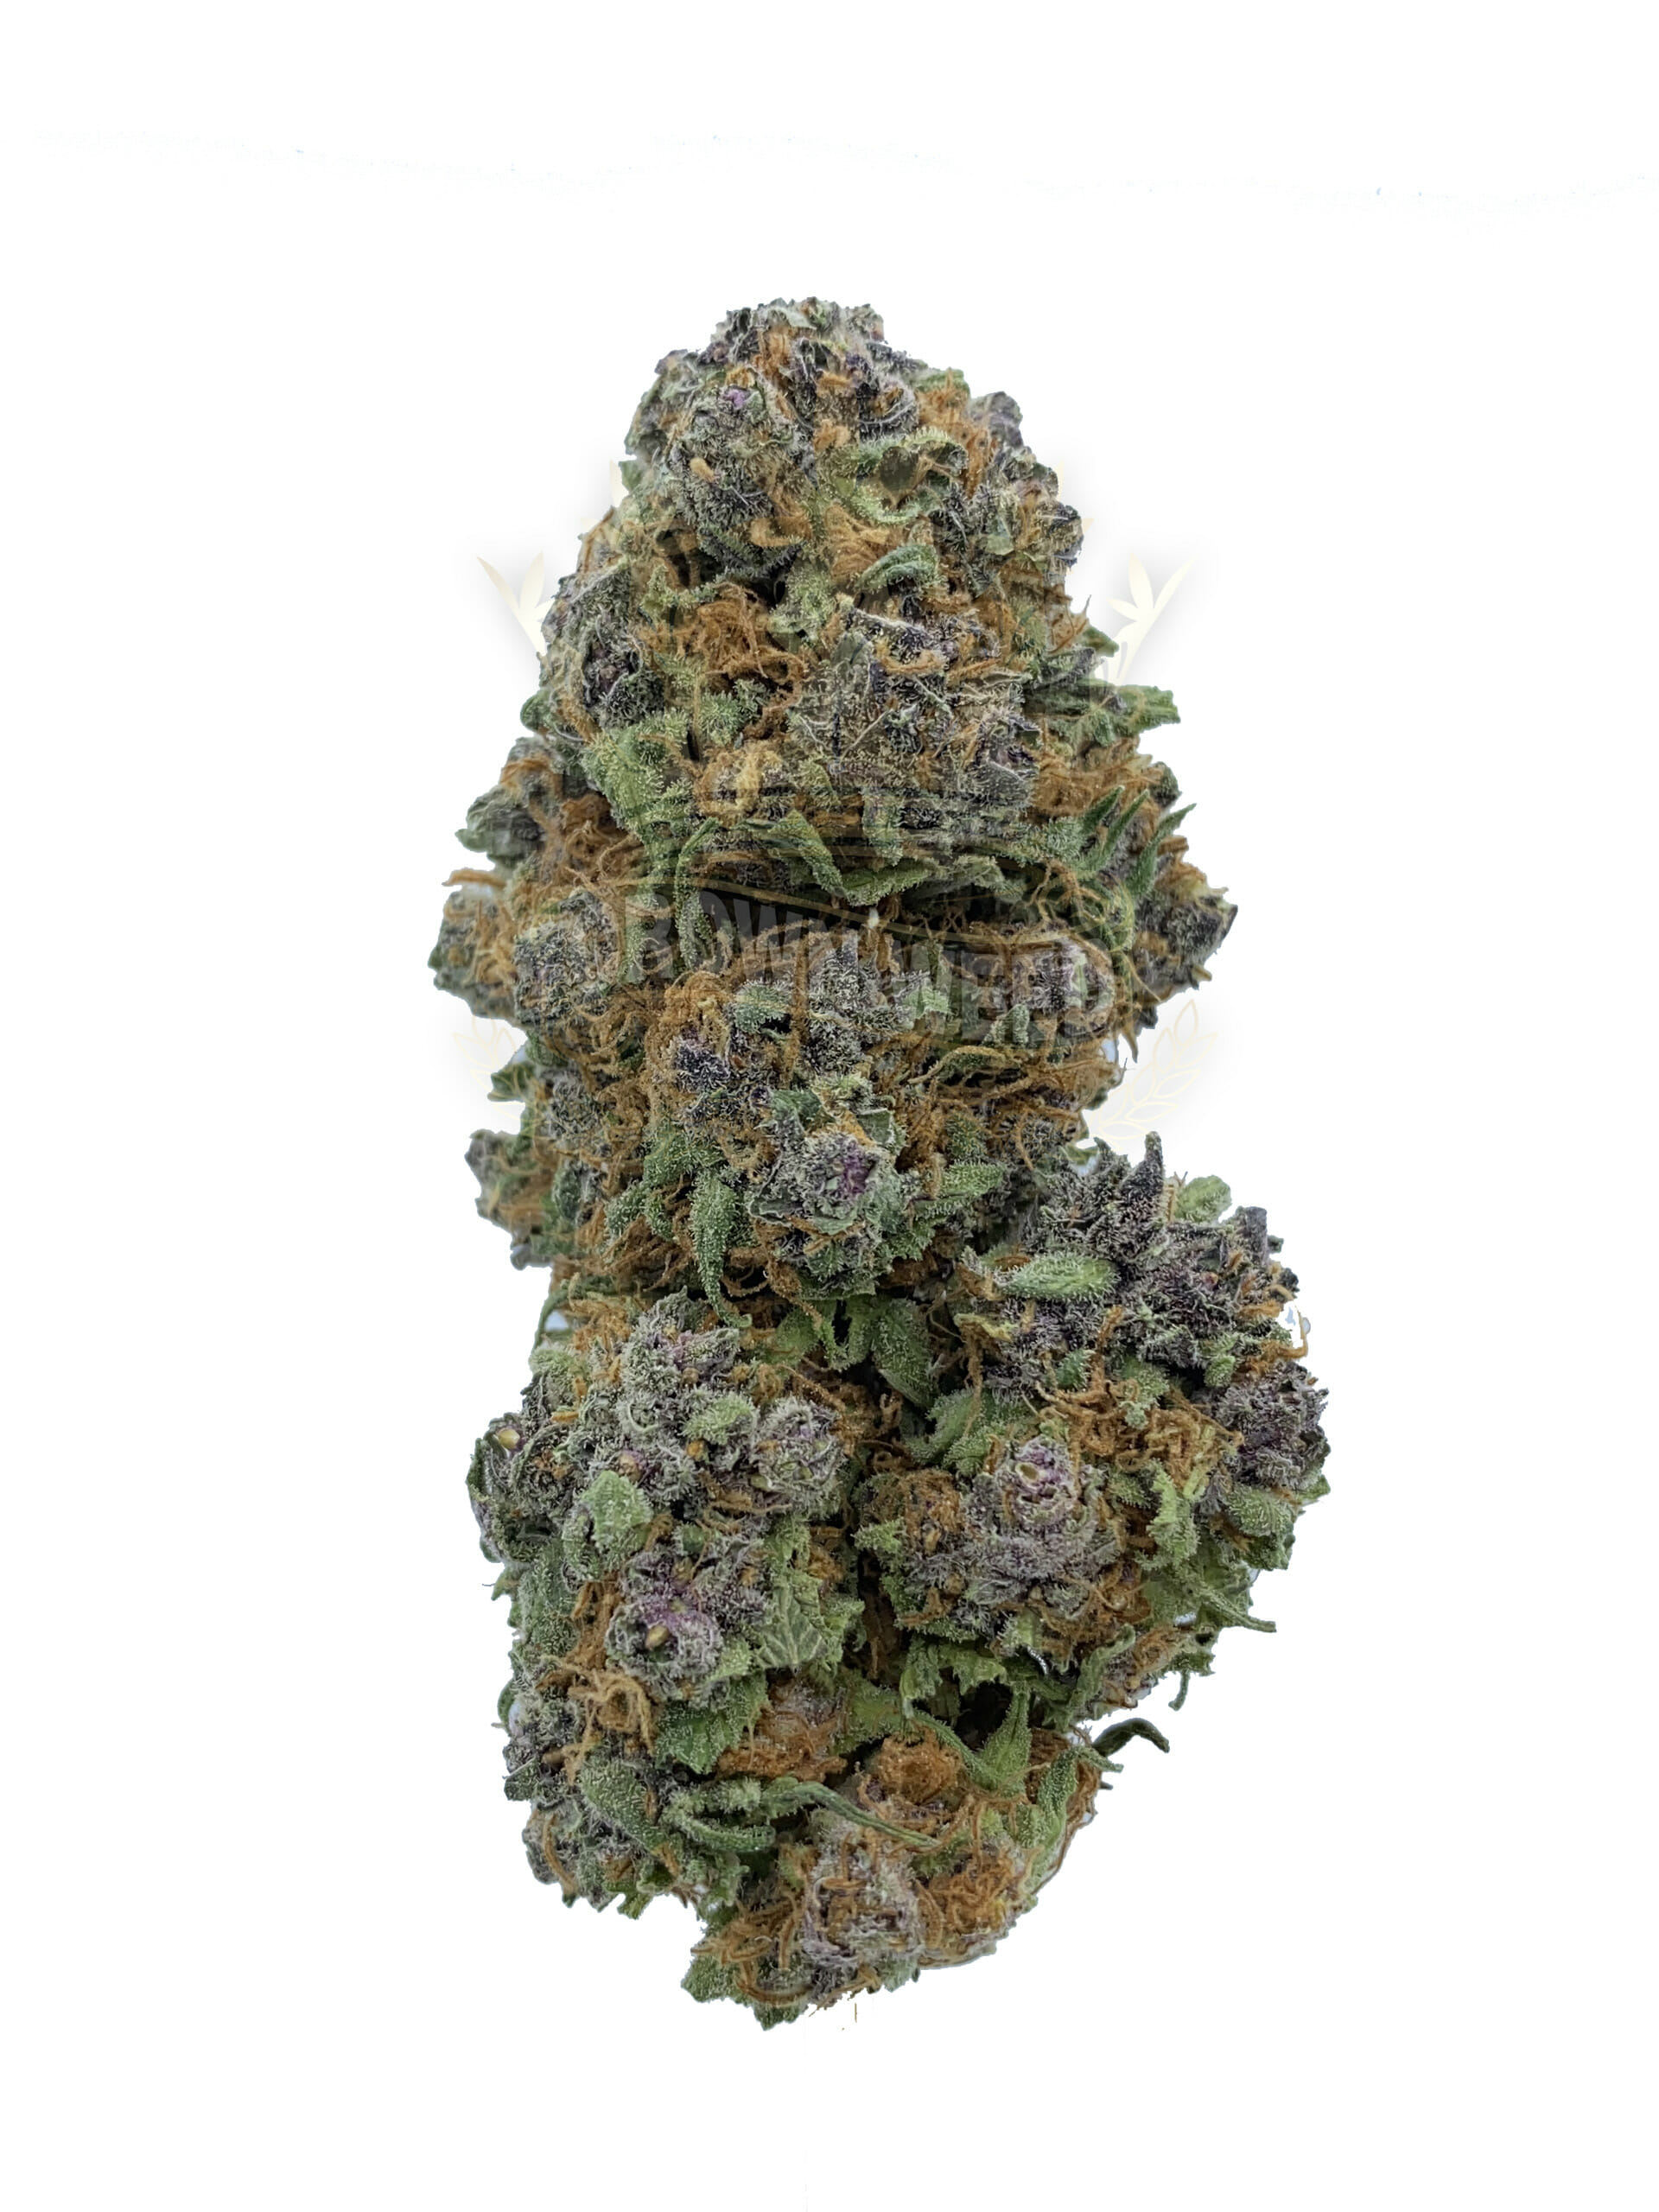 Guarantee the quality of your products in dispensary weed cannabis.